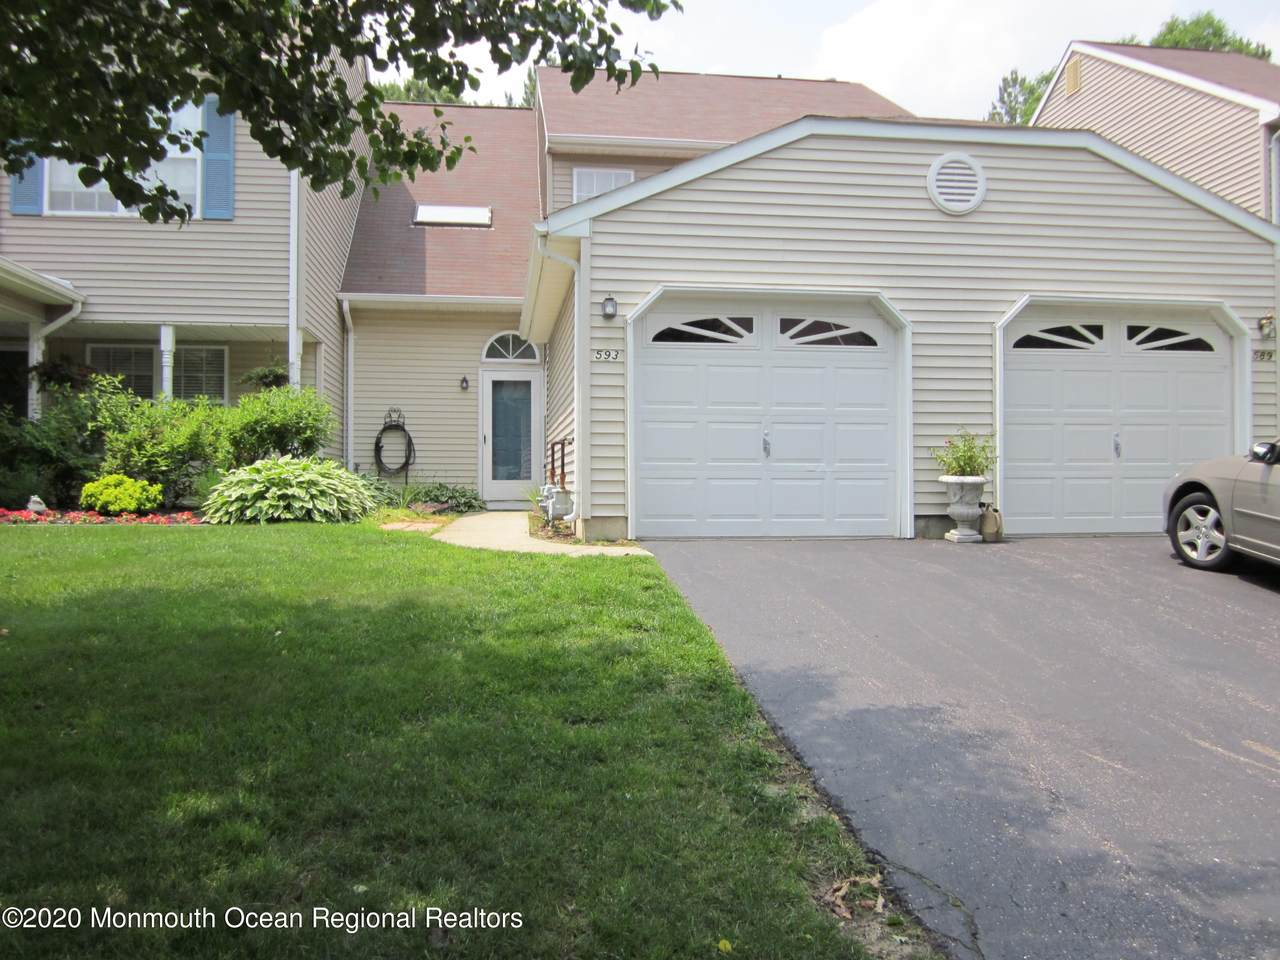 593 Woodbine Lane - Photo 1